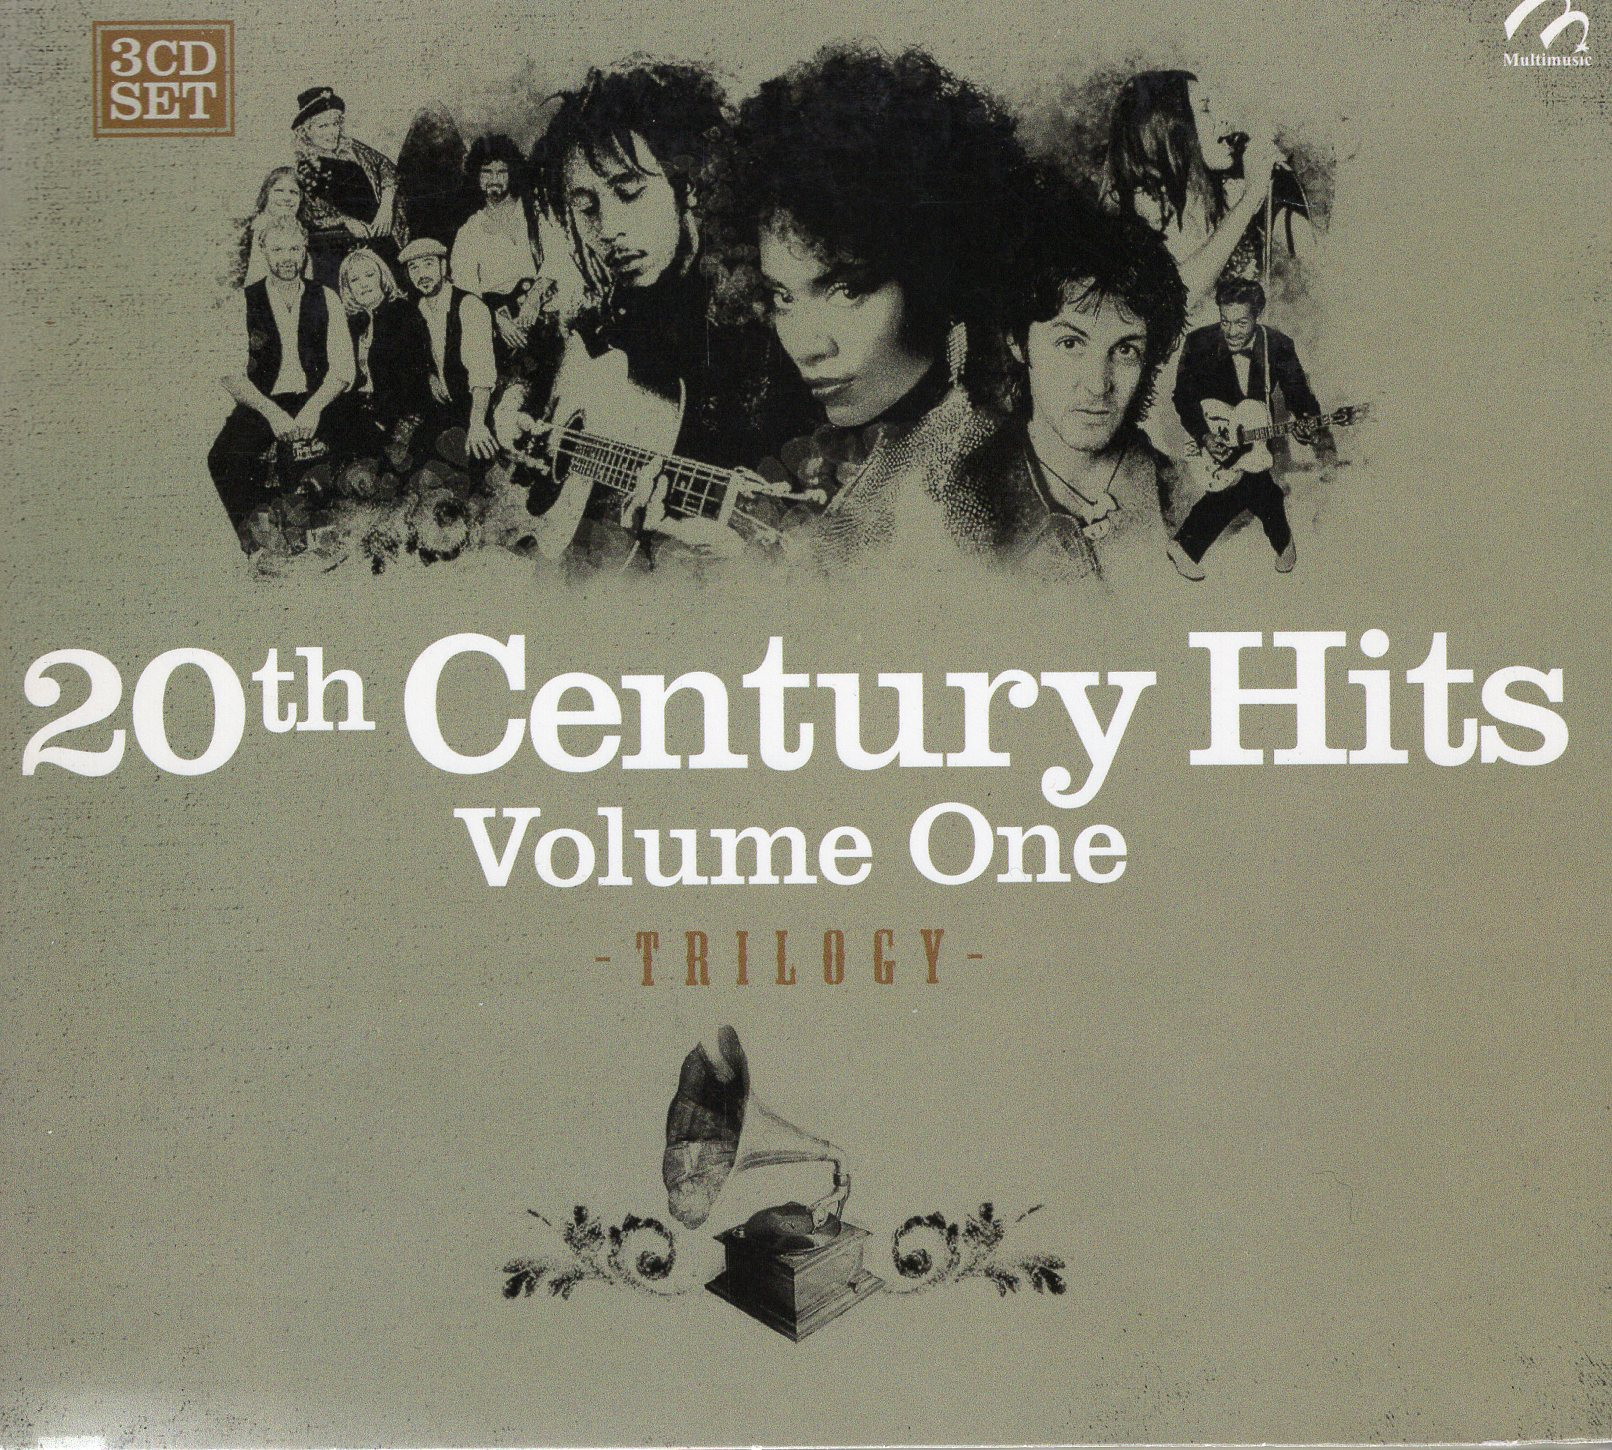 """20th Century Hits Volume One"""